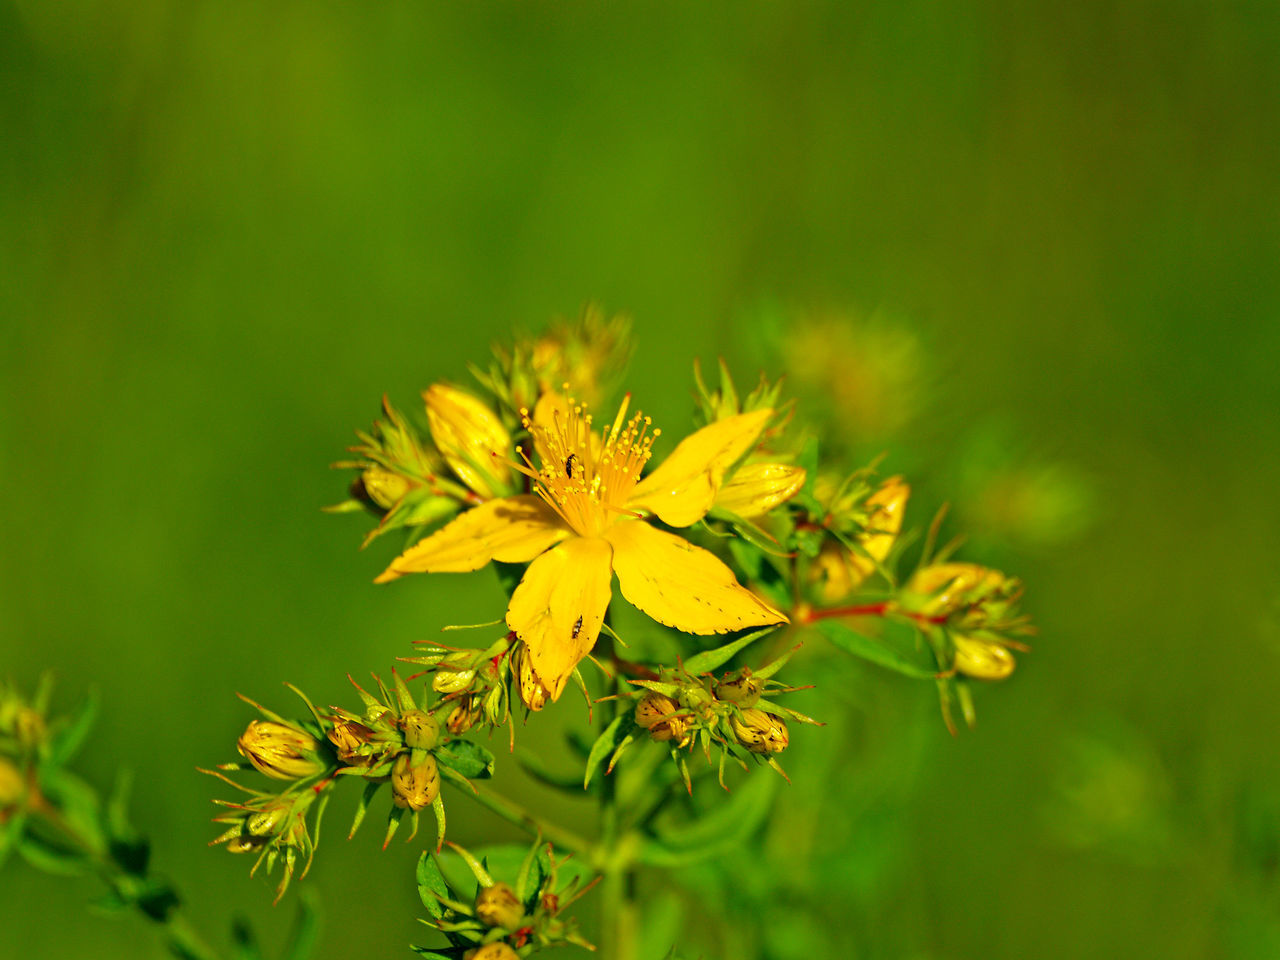 Beauty In Nature Close-up Day Environment Flower Flower Head Flowers Fragility Freshness Green Color Growth Health Homeopathy Hypericum Hypericum Perforatum Medicinal Plant Medicine Nature No People Outdoors Petal Plant Wildflowers Wildlife Yellow